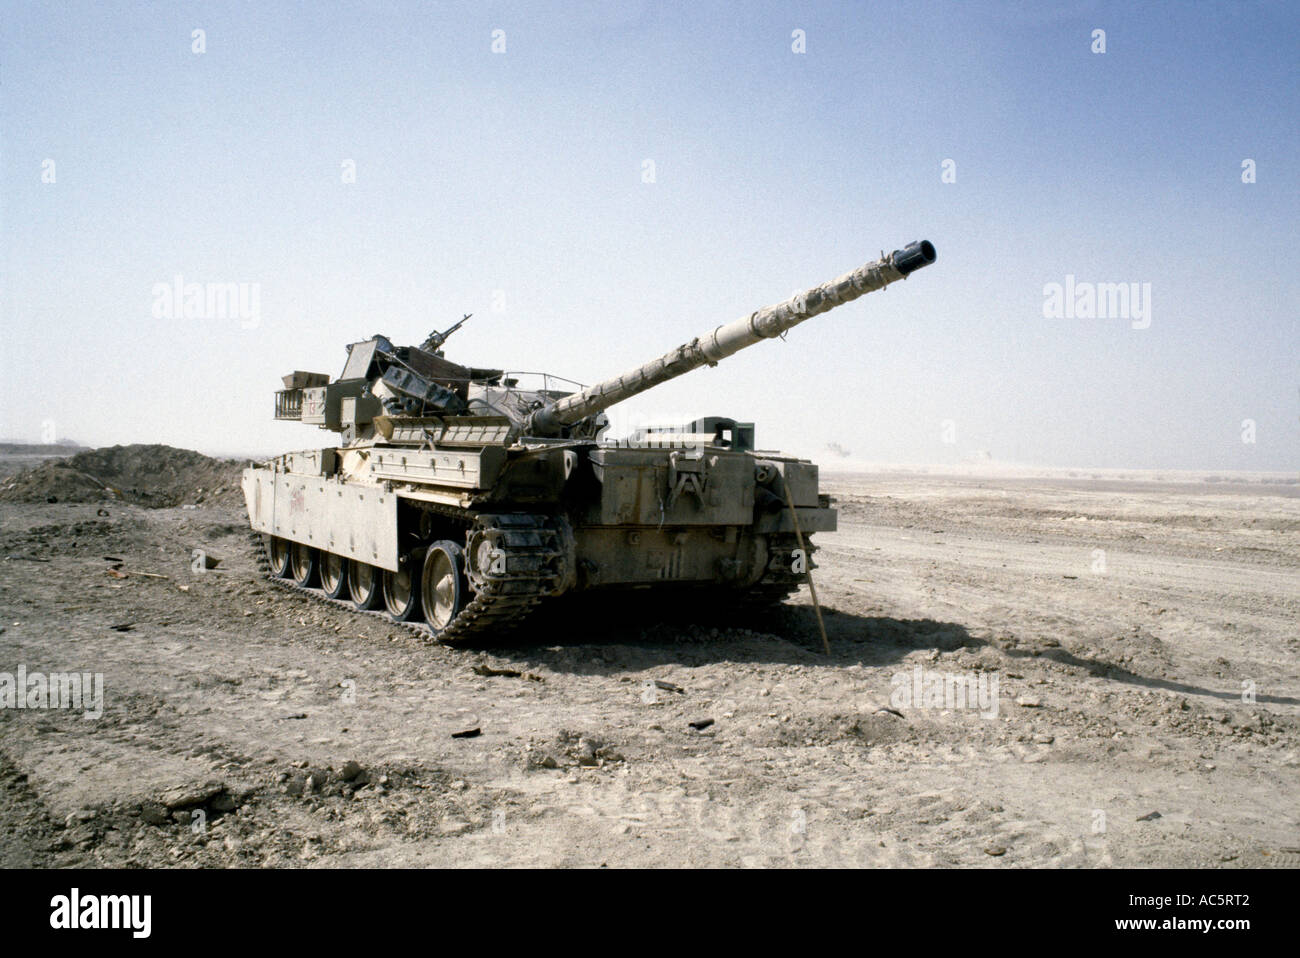 https://c7.alamy.com/comp/AC5RT2/iraqi-tank-during-iran-iraq-war-1980s-AC5RT2.jpg